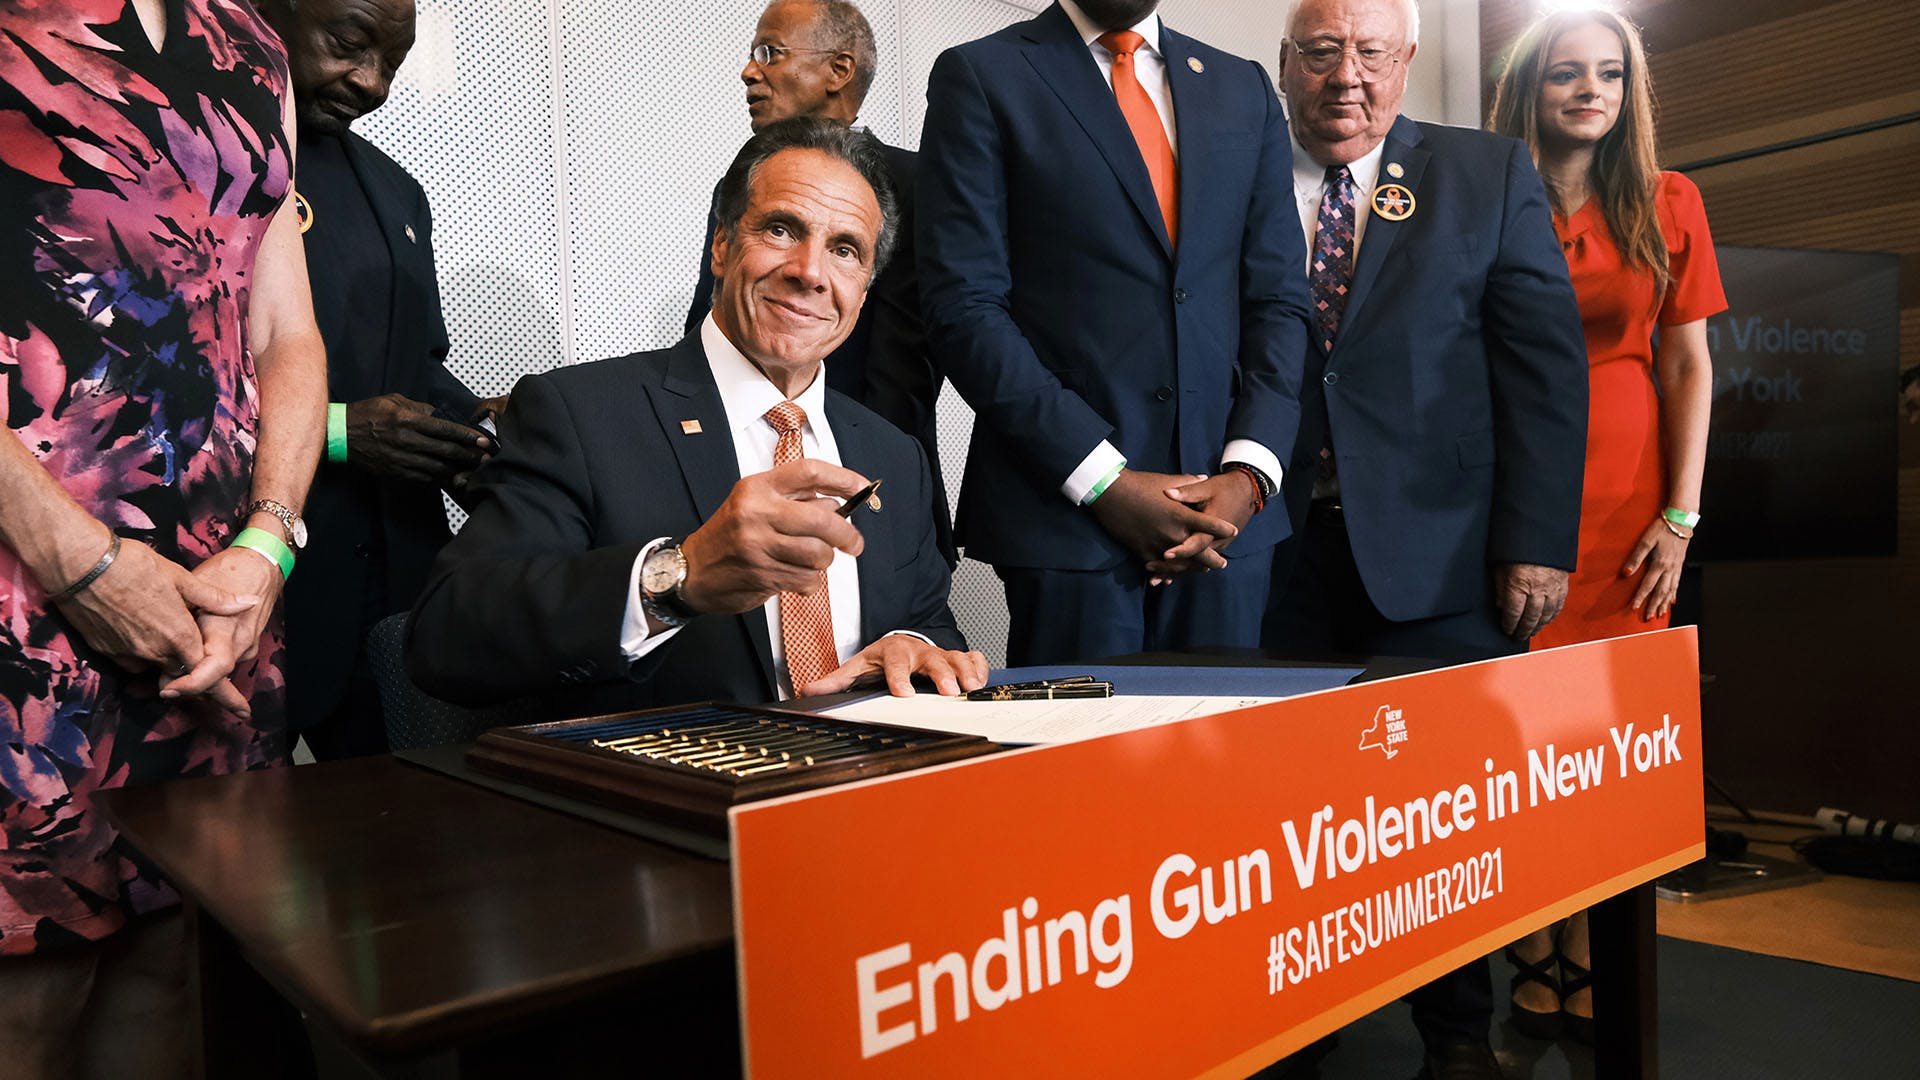 An Epidemic of Violence: A State of Emergency Has Been Imposed in New York